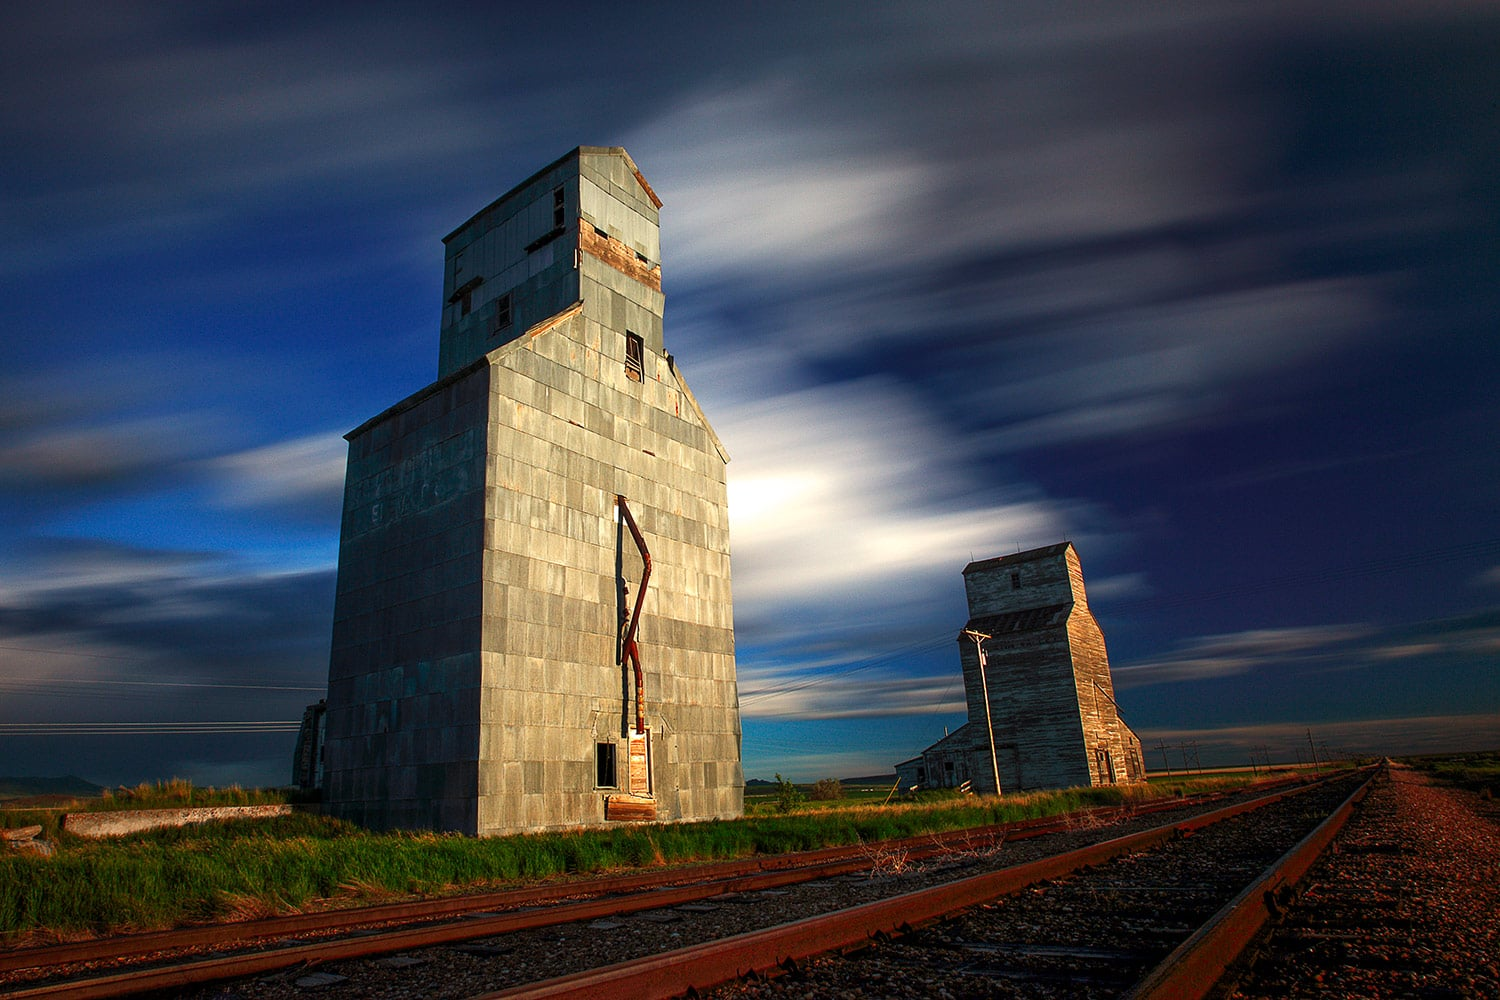 Old Grain Elevators